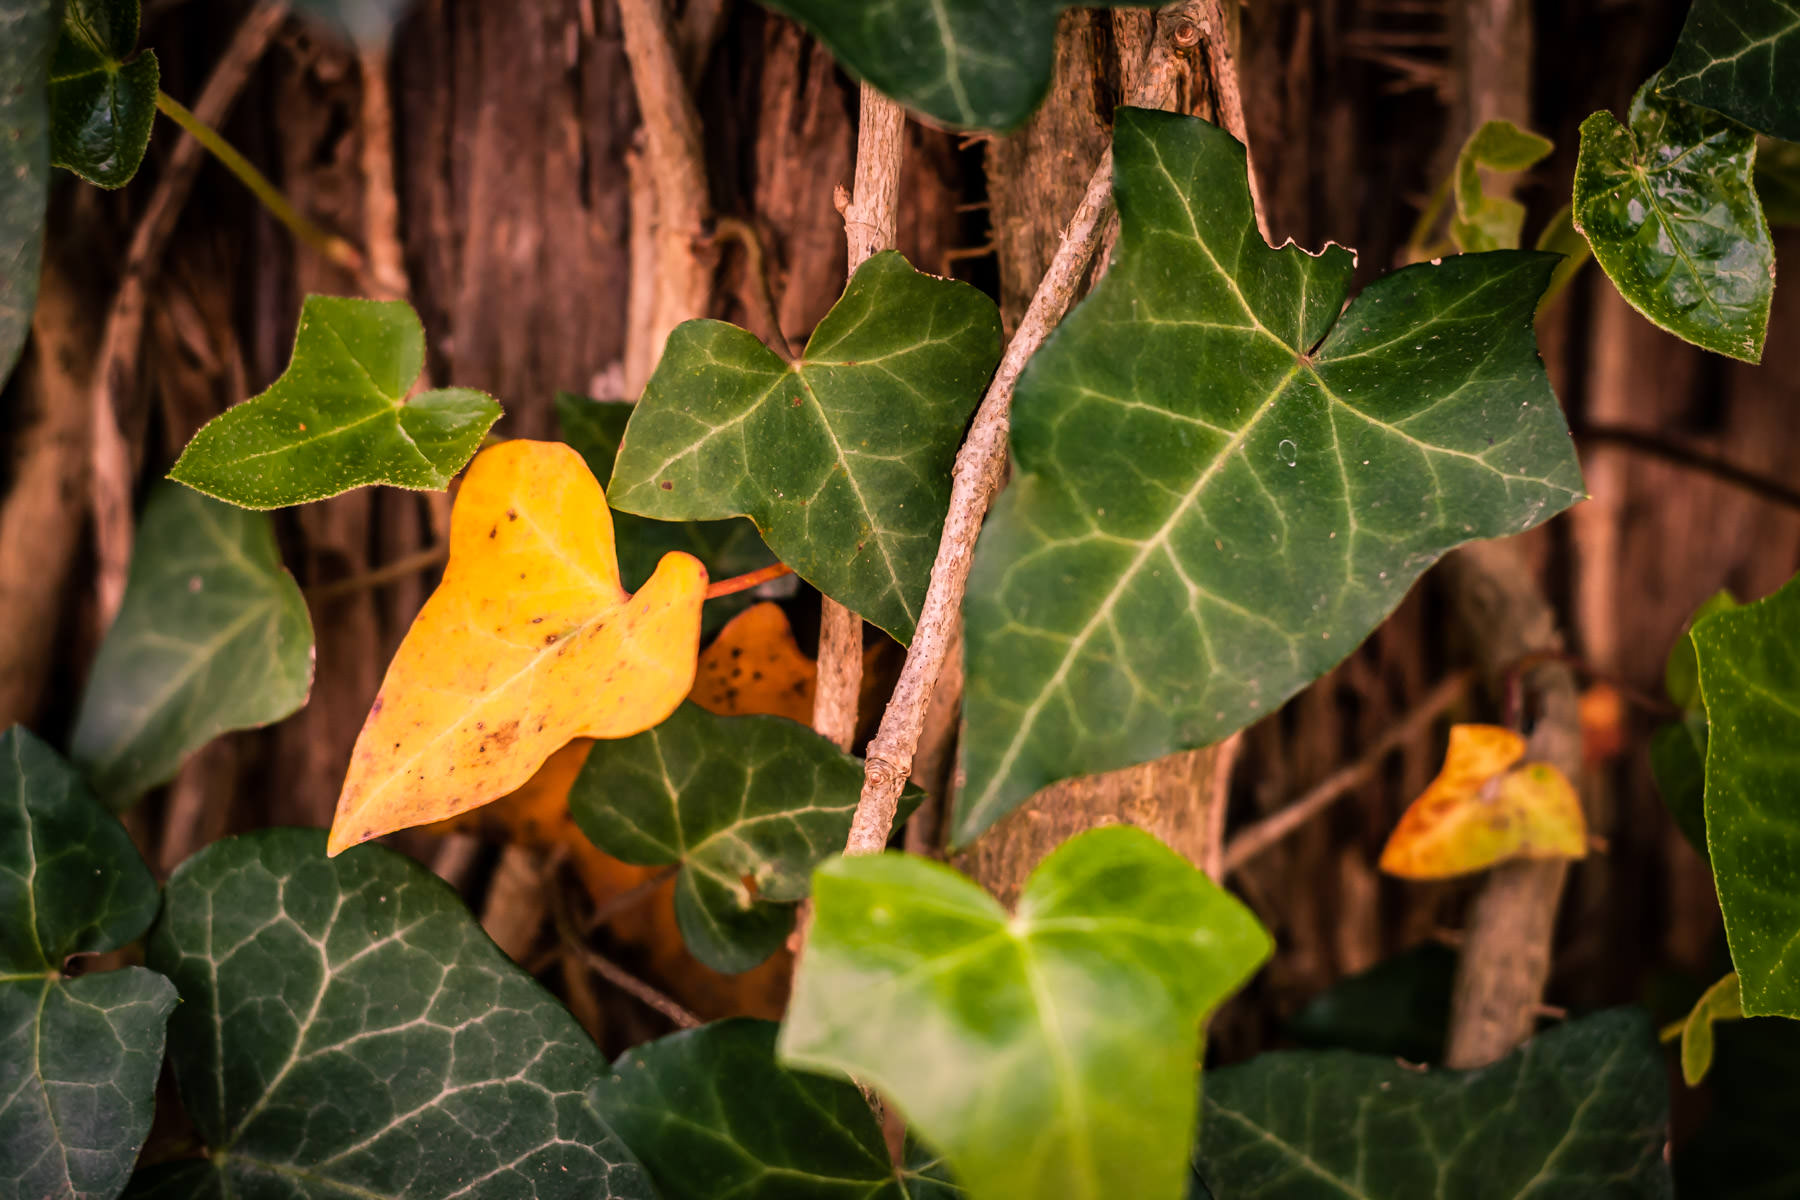 Ivy leaves growing on a tree at Bonham State Park, Texas.